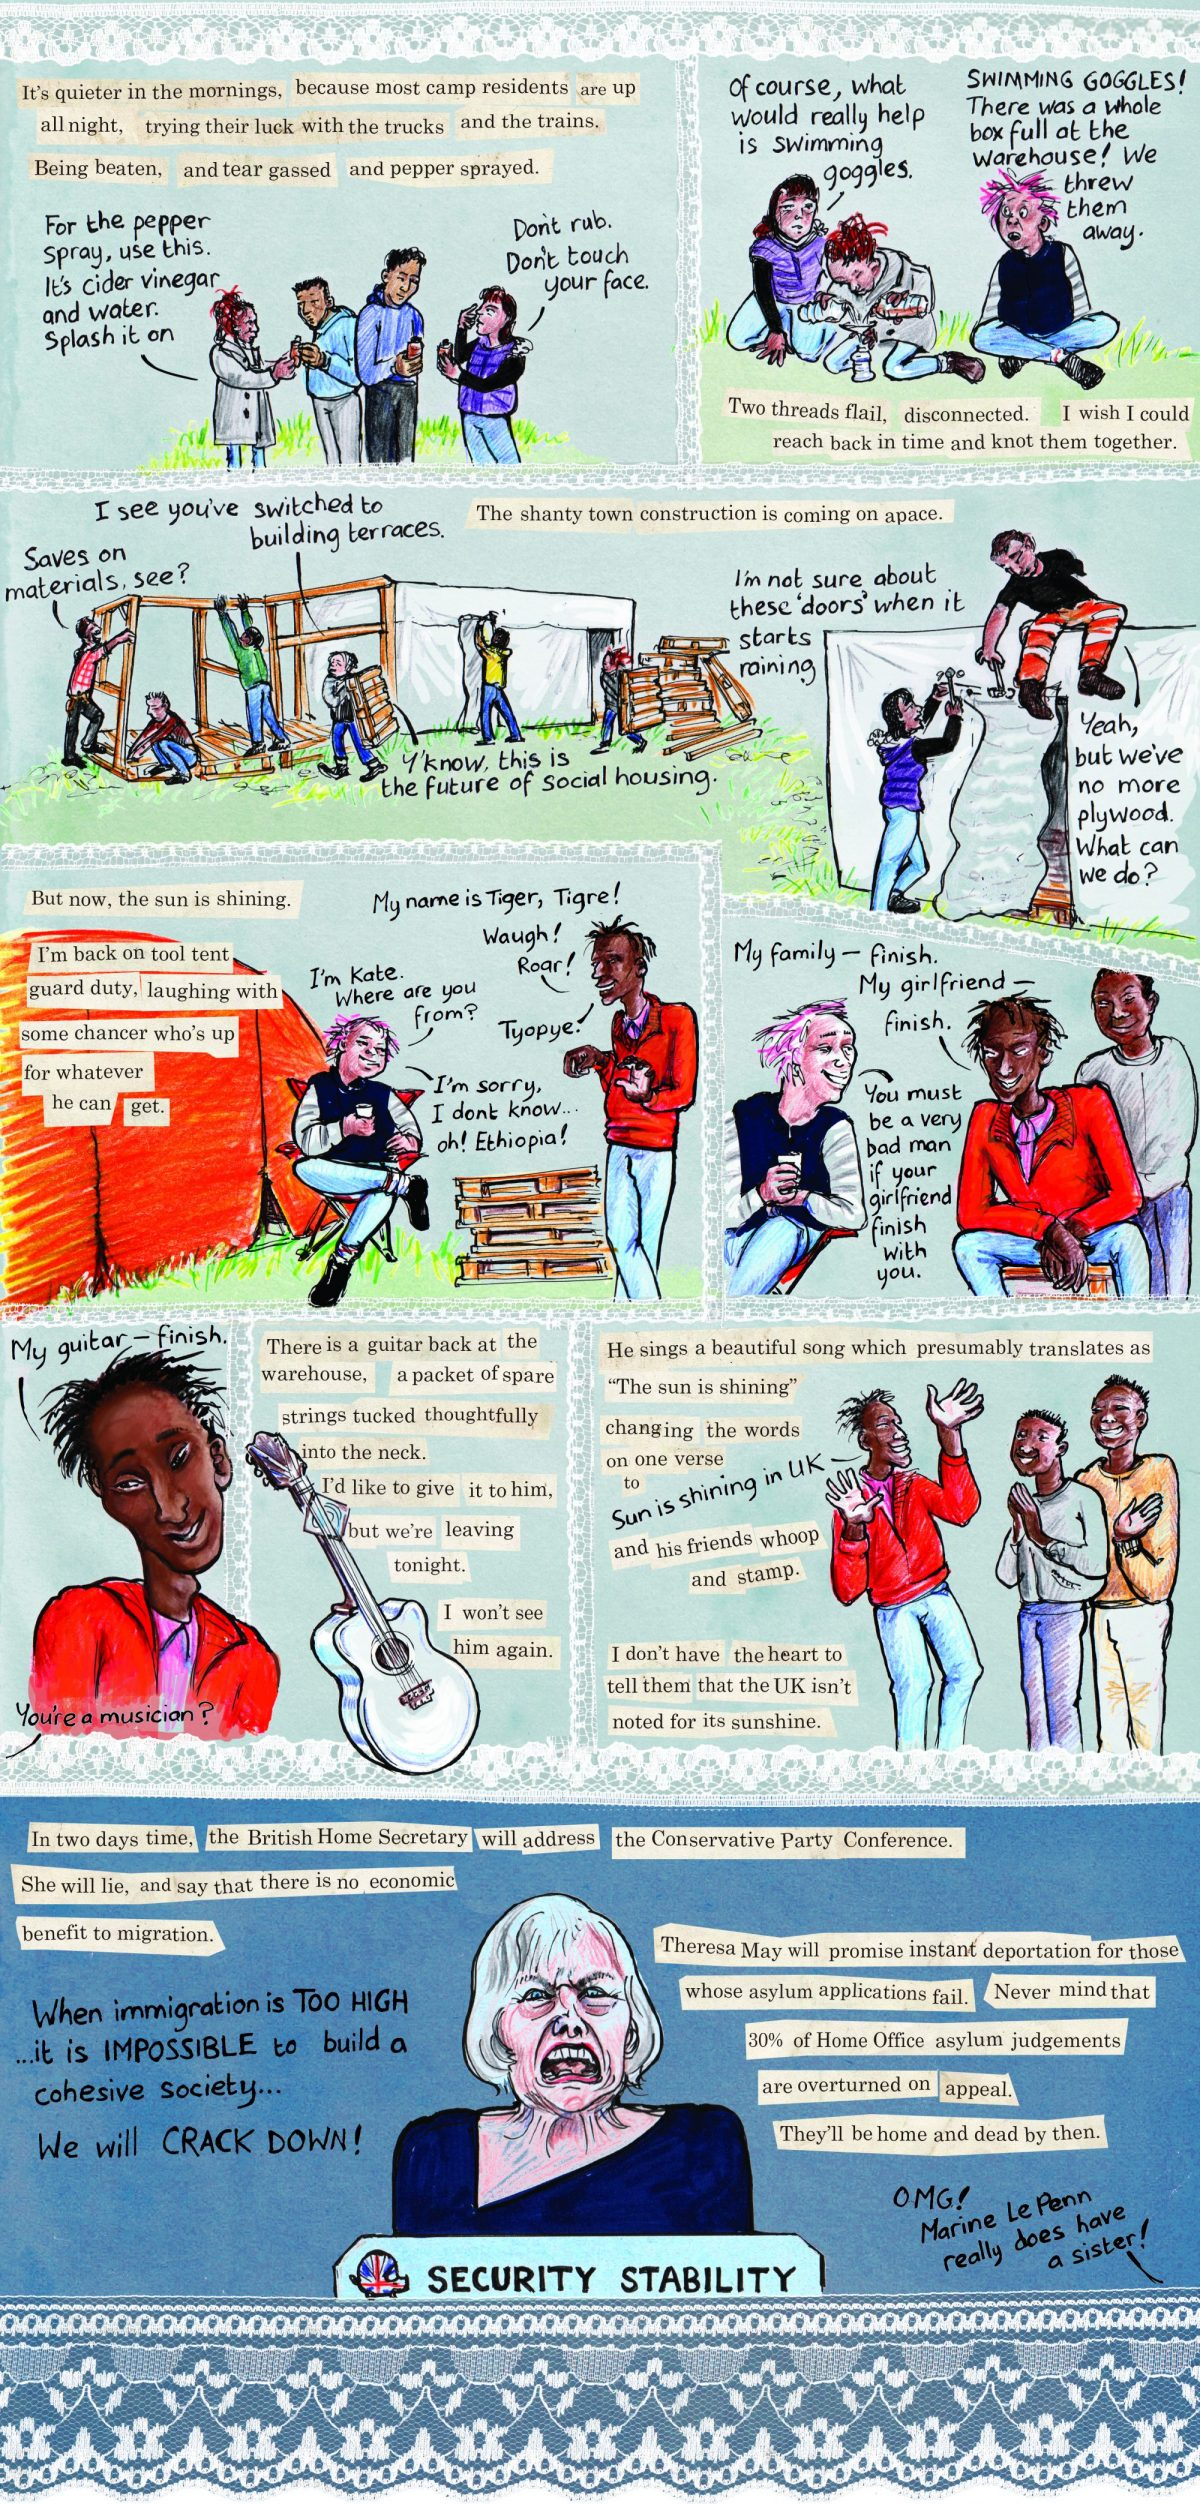 graphic essay threads from the calais refugee crisis graphic essay  threads from the calais refugee crisis graphic essay kate kate evans